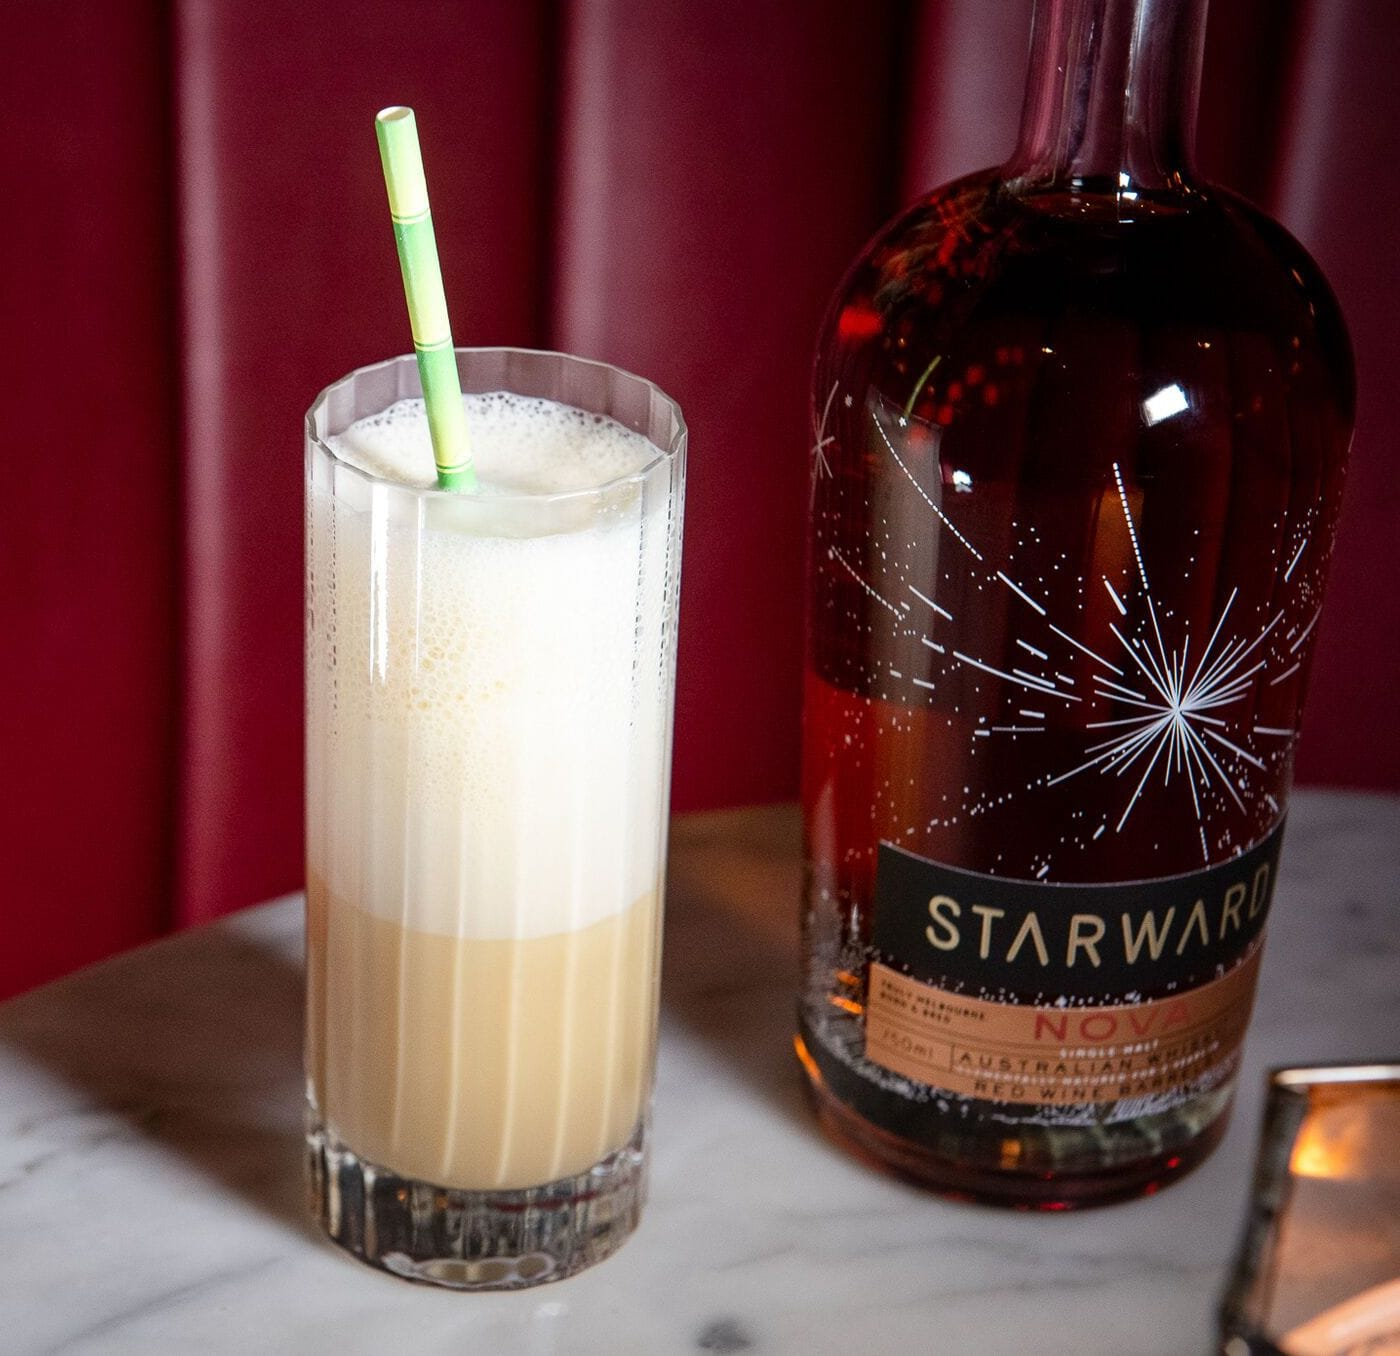 Starward New World Egg Nog